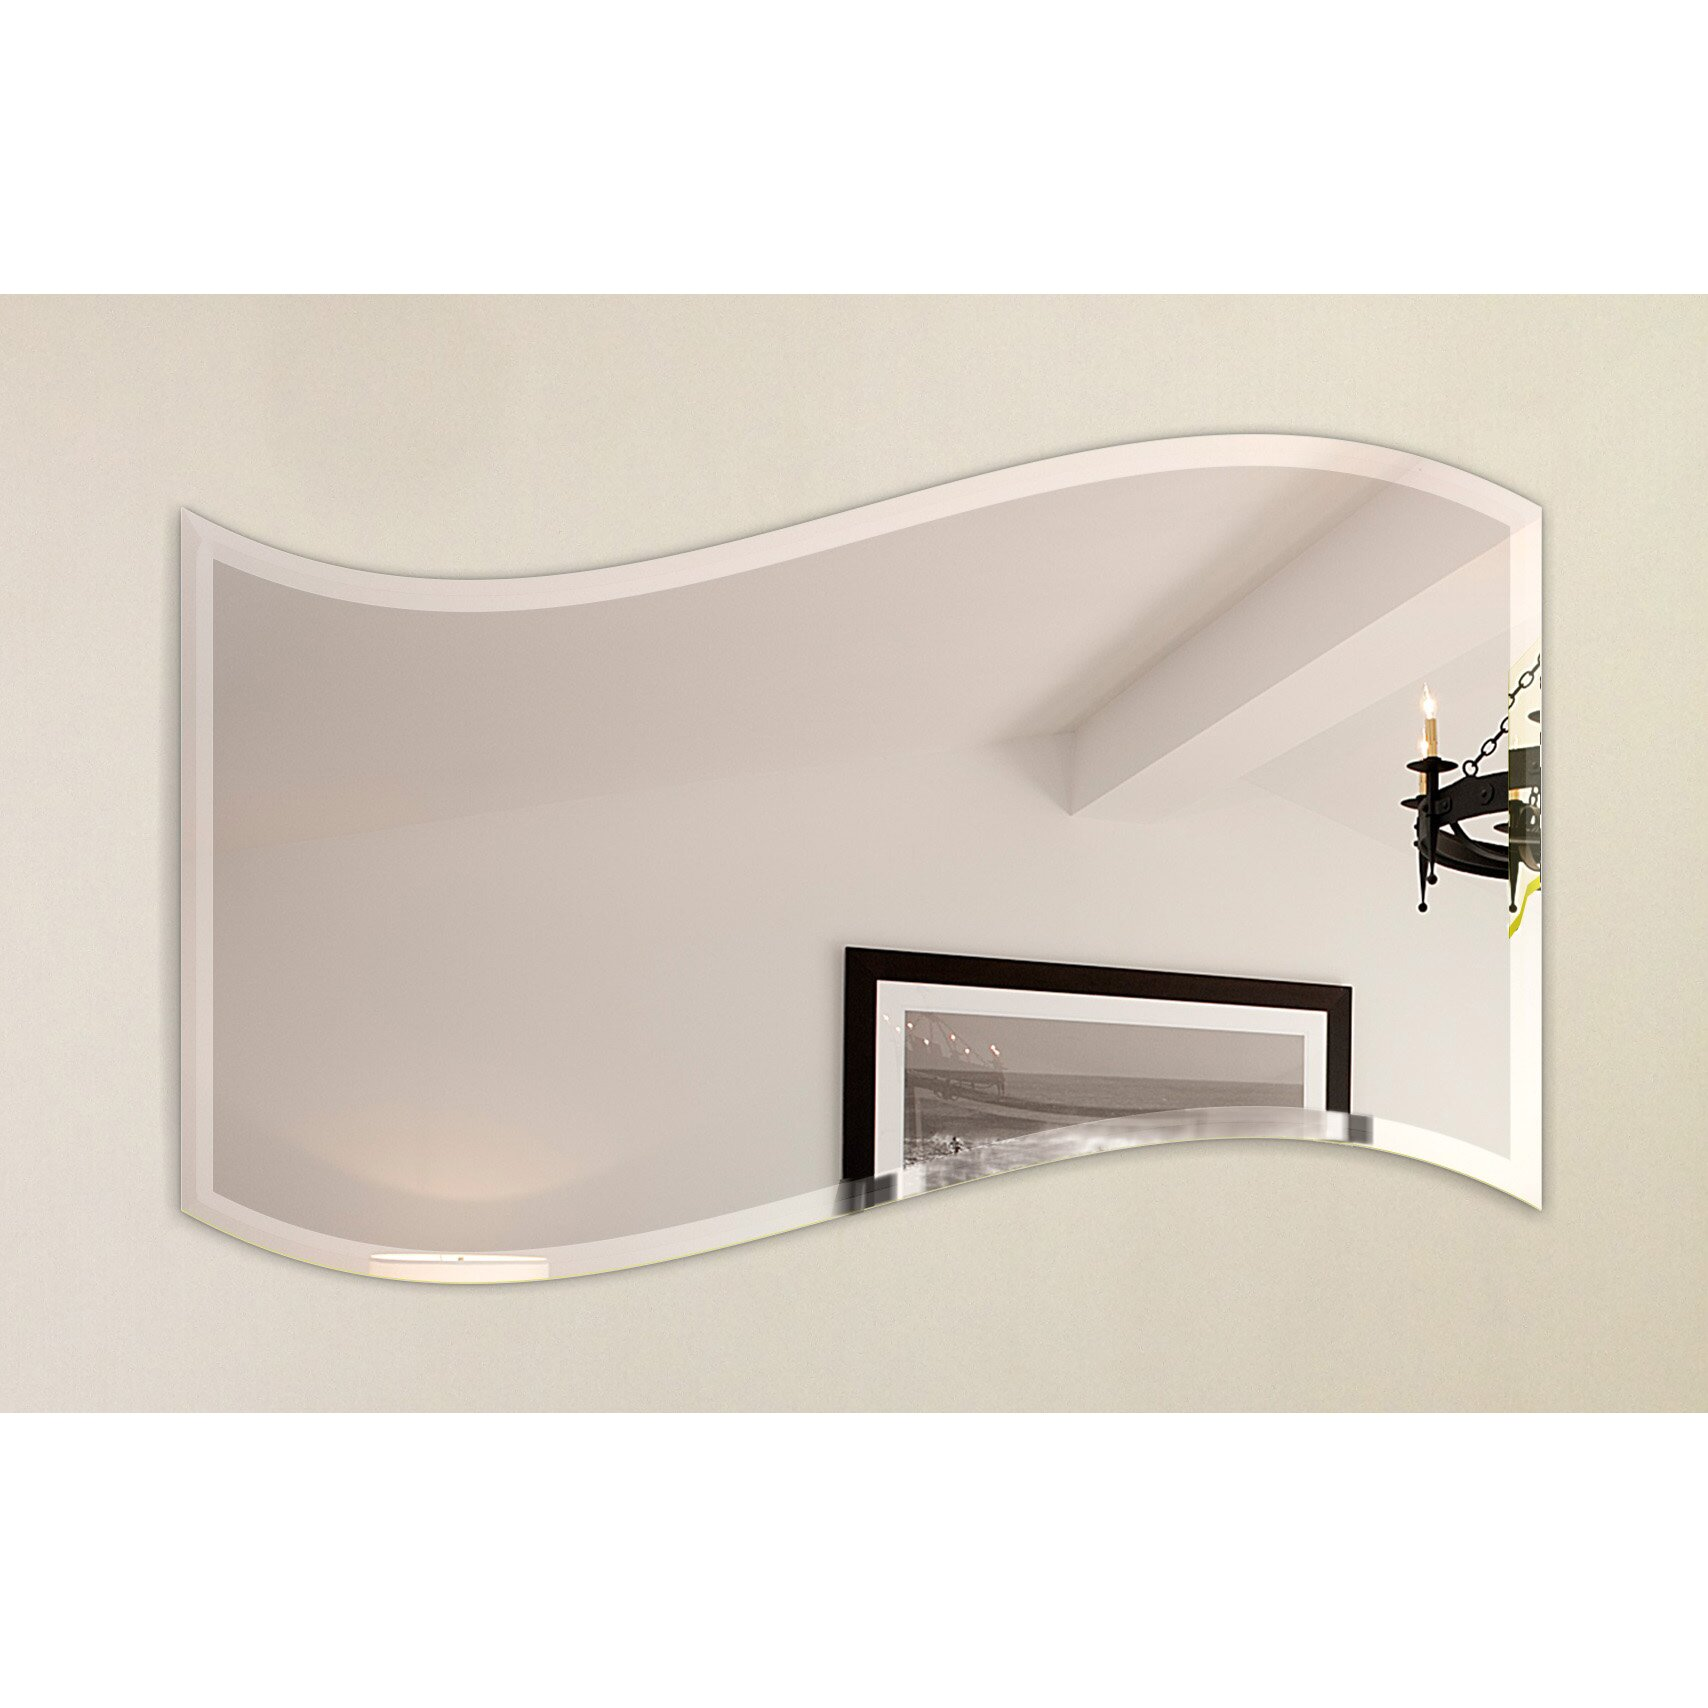 Fab glass and mirror wavy beveled polish frameless wall for Frameless wall mirror